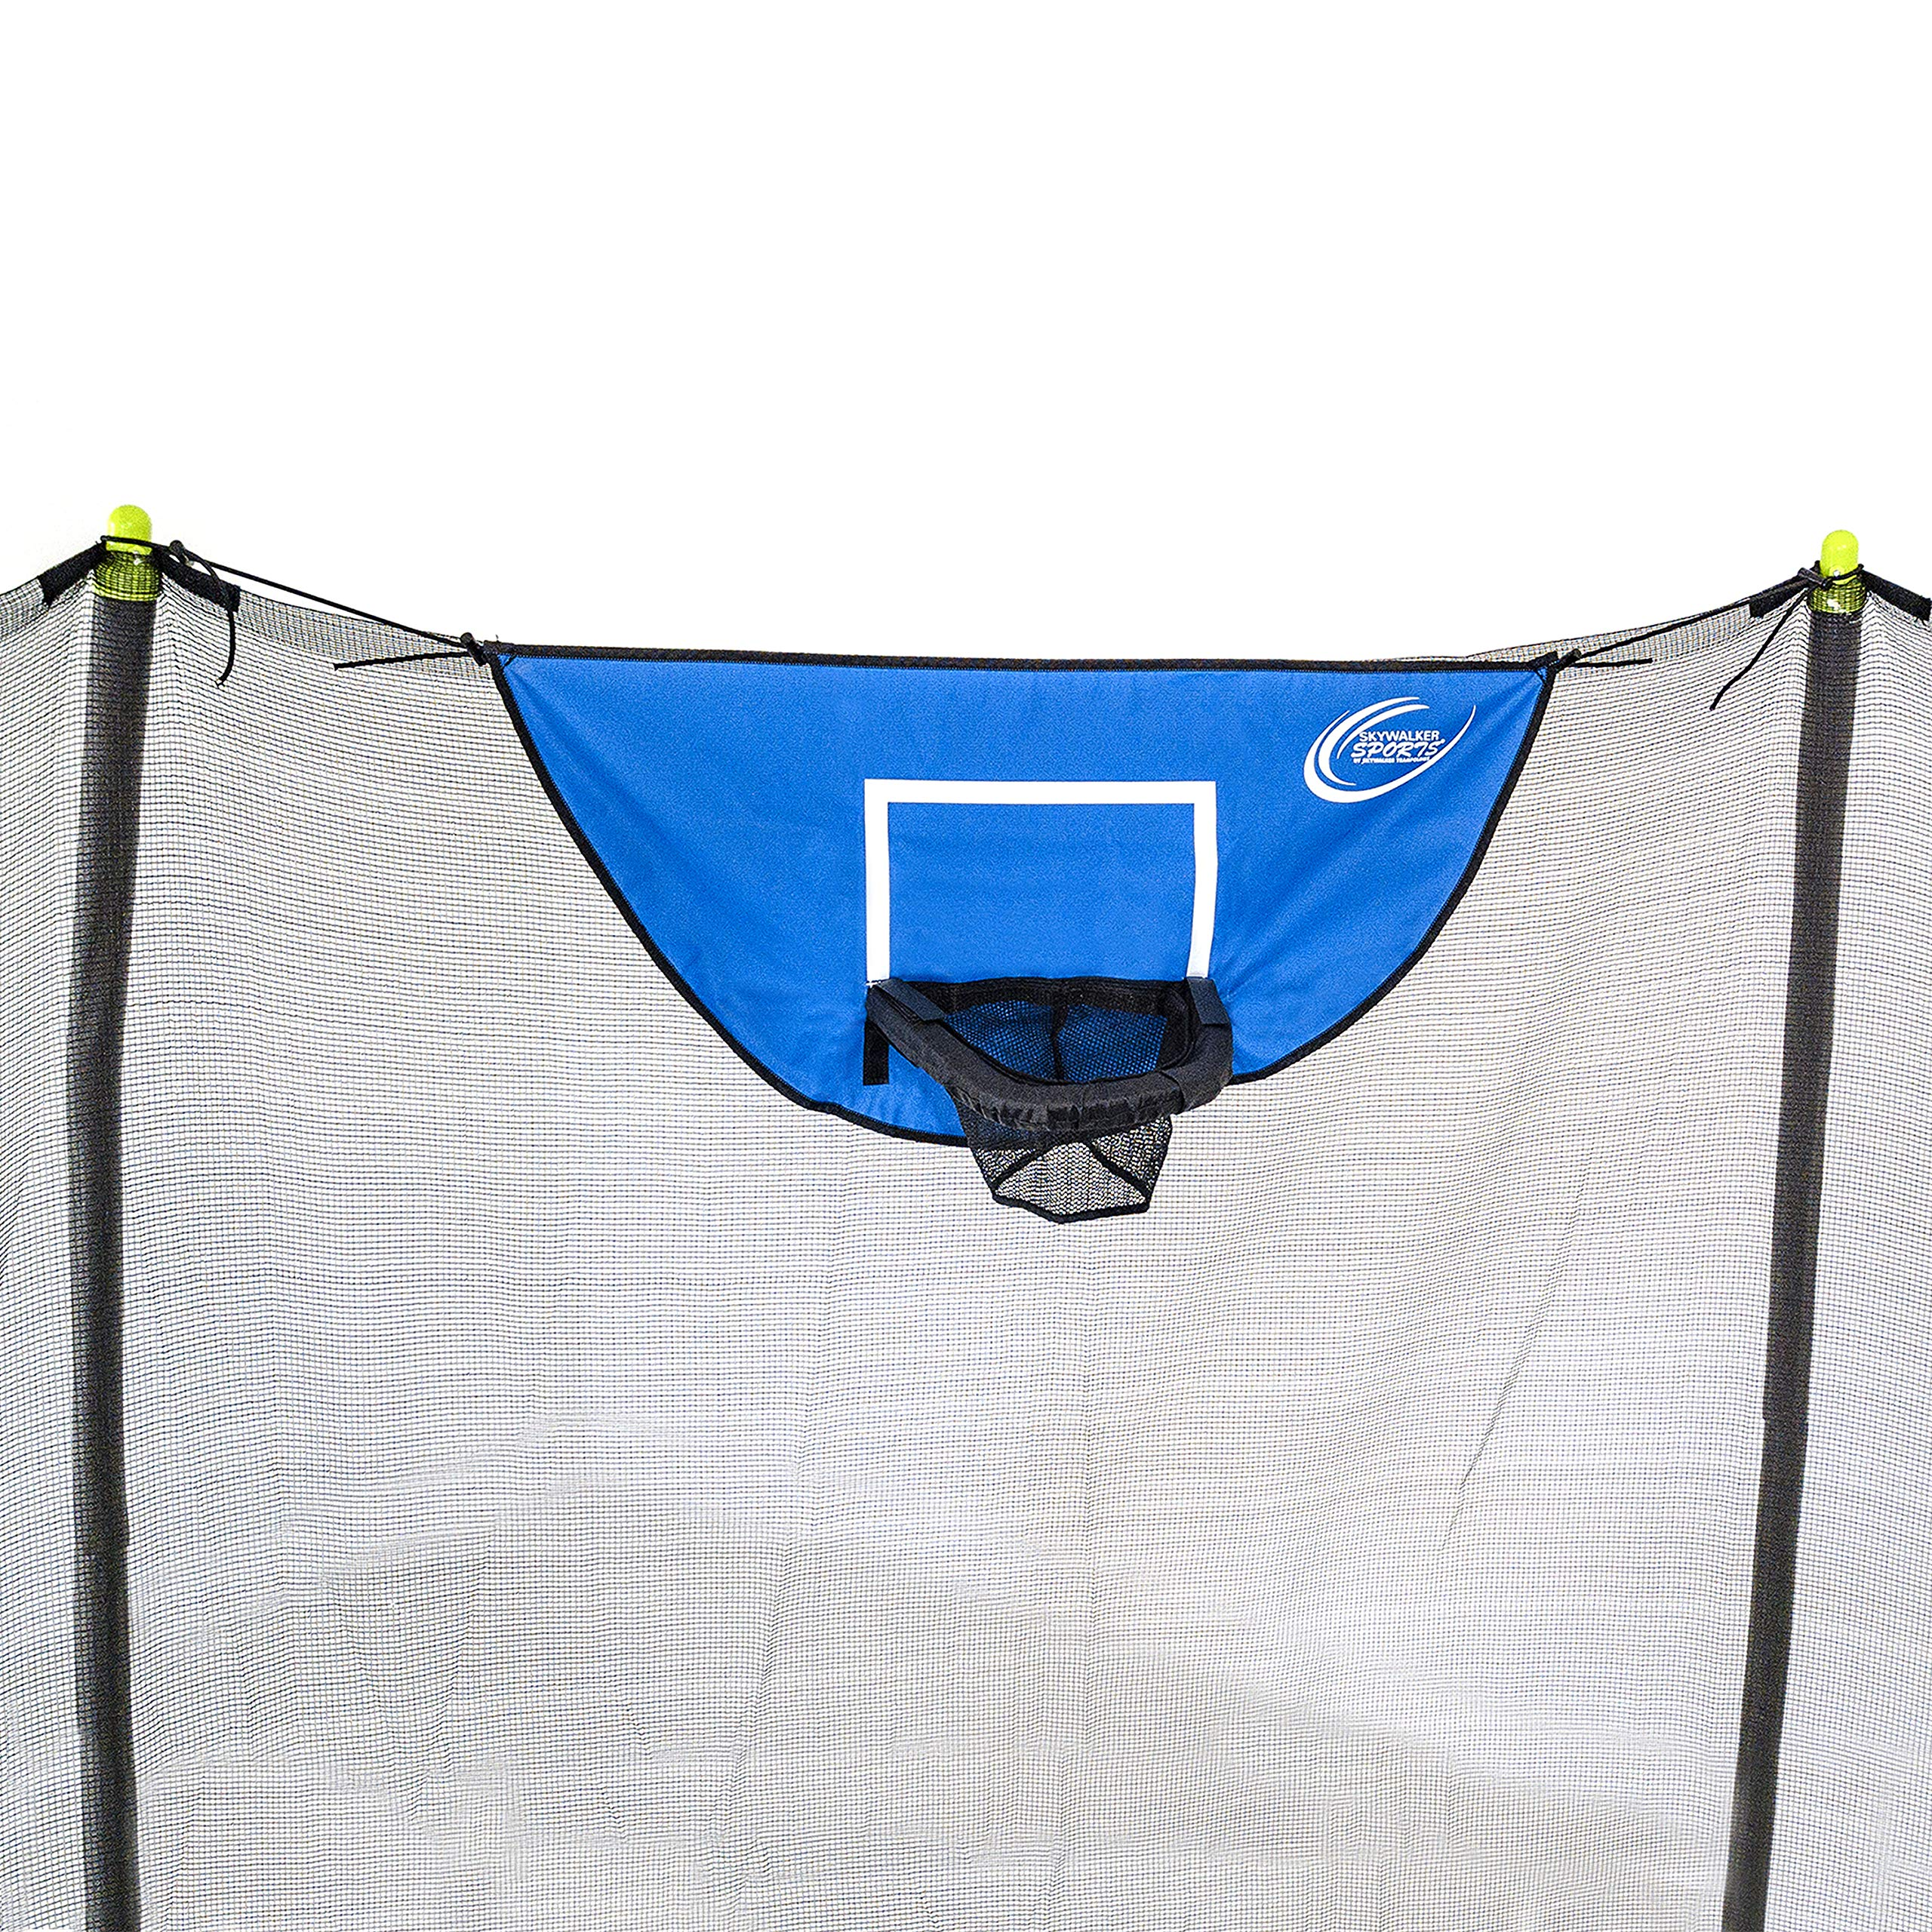 NEW Skywalker Trampolines Basketball Game by Skywalker Sports